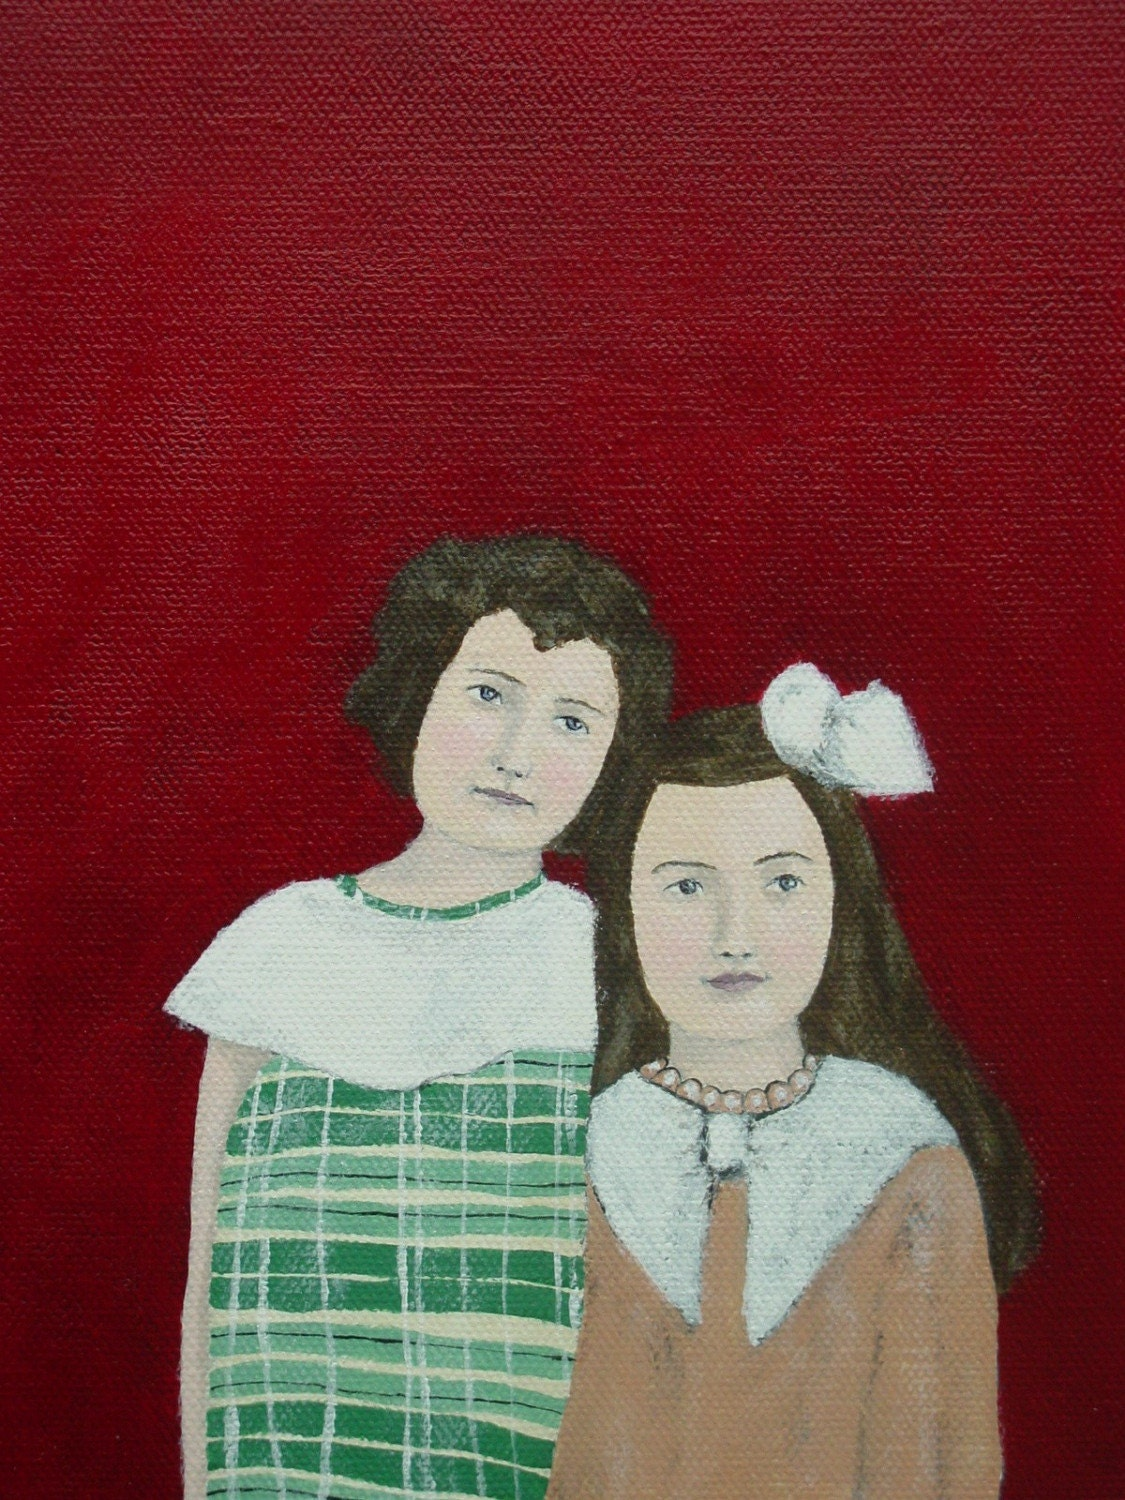 Girls in plaid and bows, Original Acrylic Painting